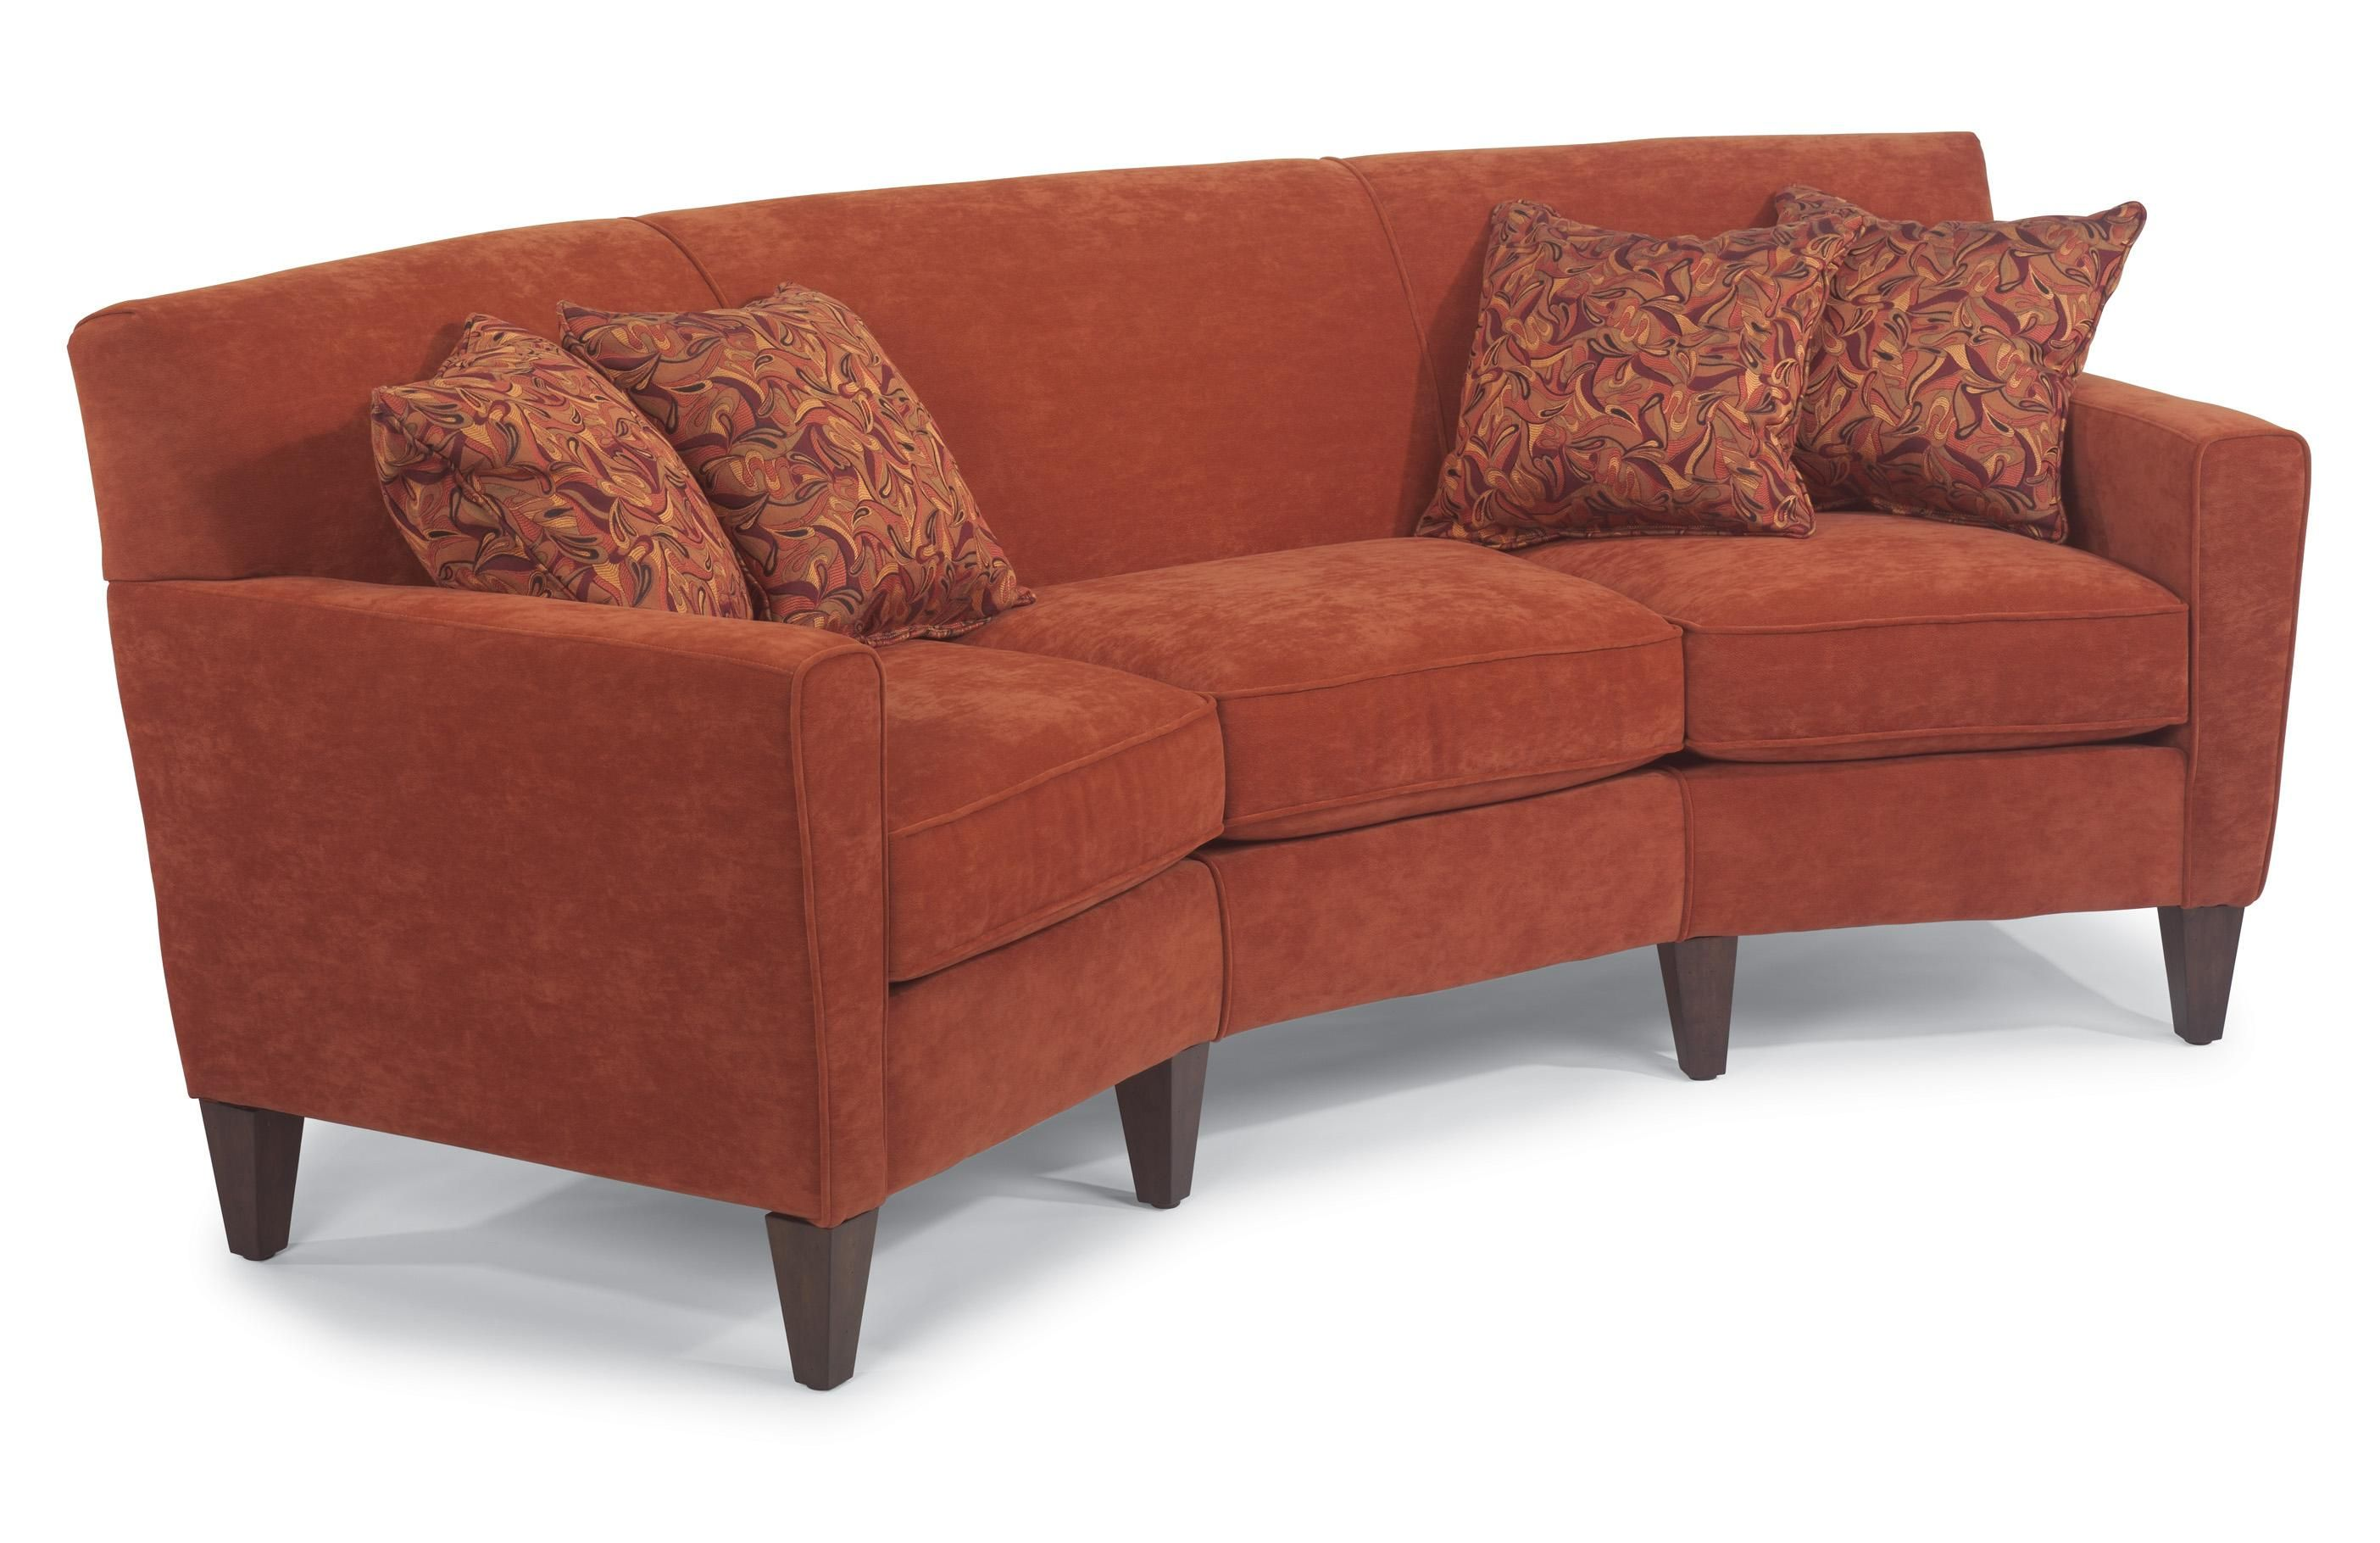 Digby Three Seat Conversation Sofa By Flexsteel Darvin Furniture